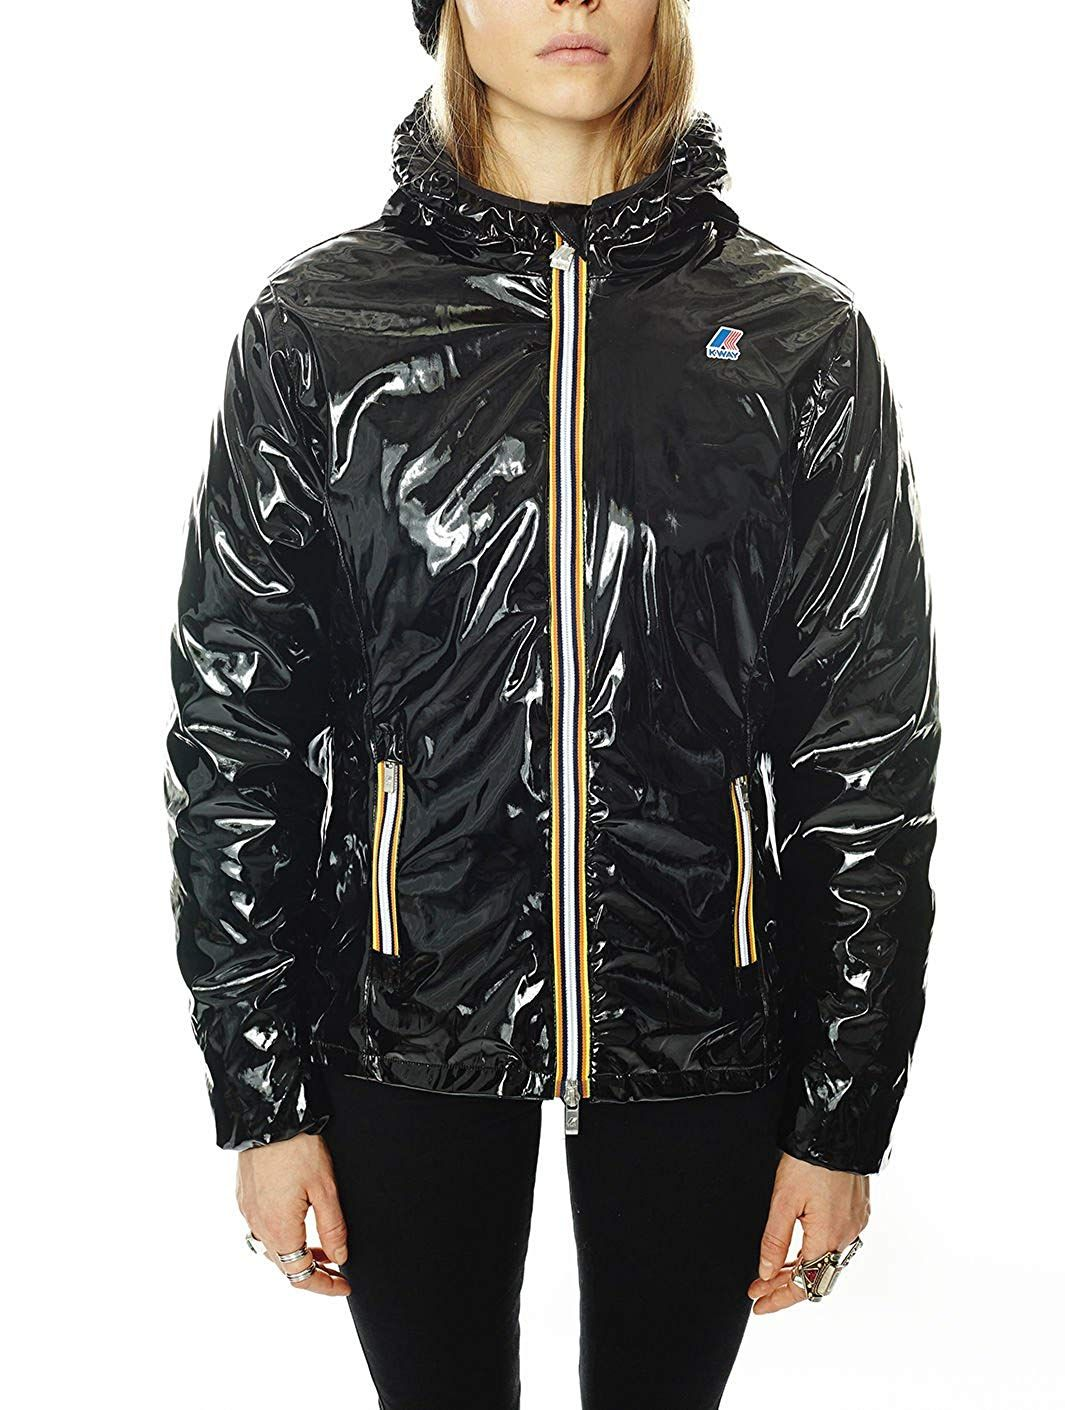 3f9a87f3e45 Raincoat Lily Vinyl Black K-Way 8 Women  Amazon.co.uk  Clothing. Find this  Pin and more on shiny nylon ...